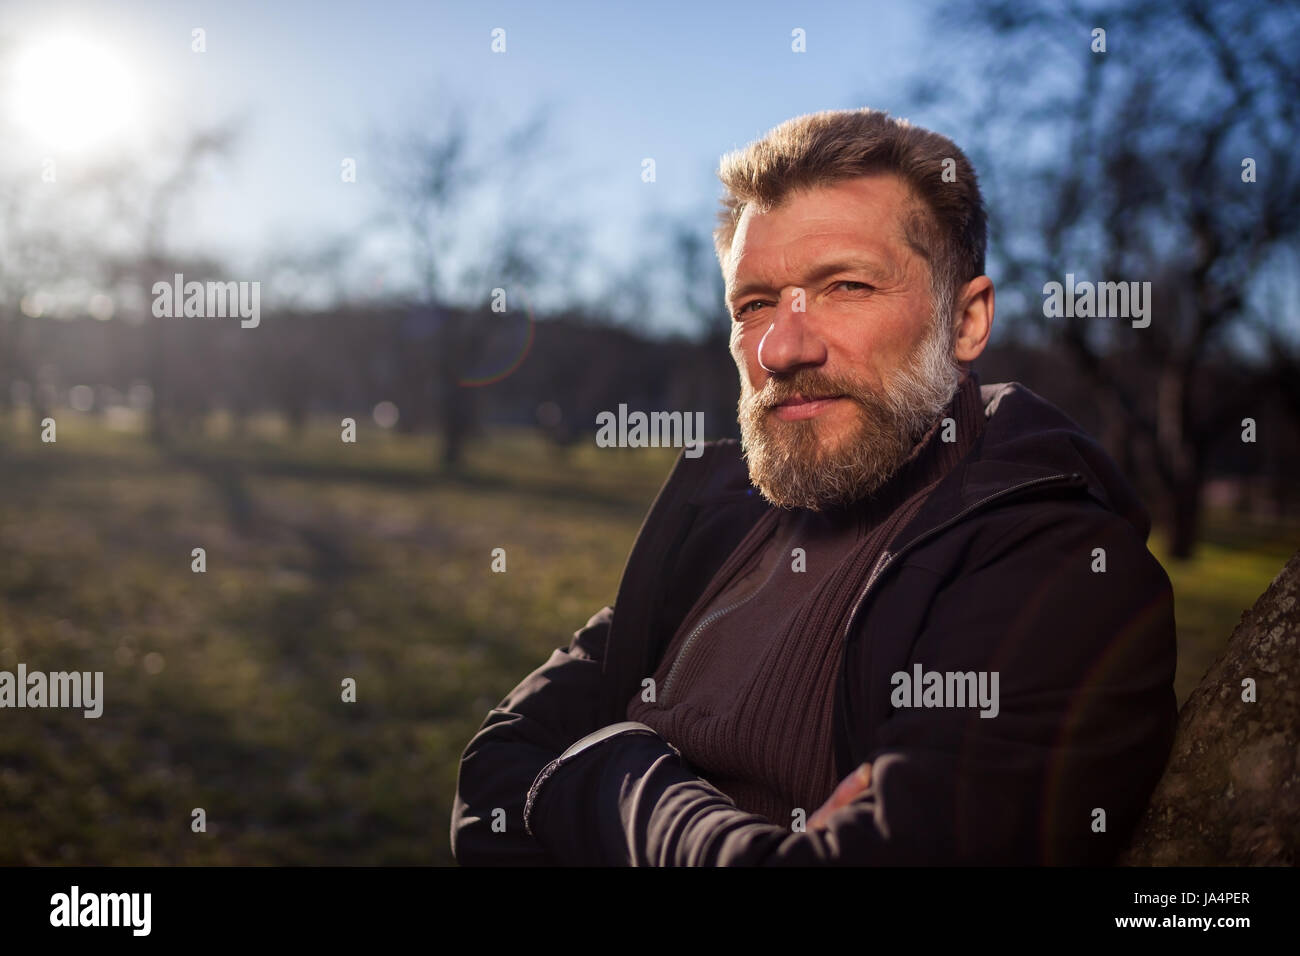 Portrait of an elderly man in a park. He looks thoughtfully into the distance, planning and dreaming about the future - Stock Image